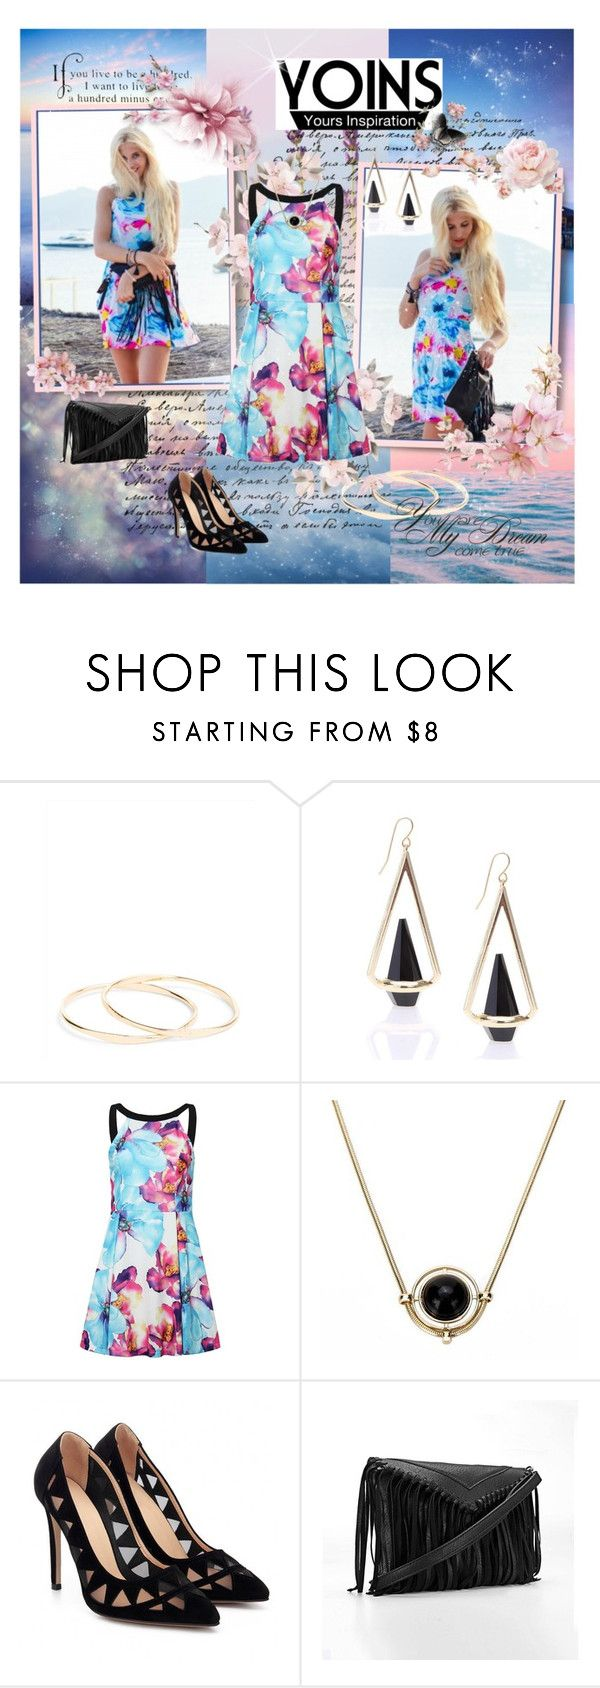 """""""YOINS"""" by kristina-kazlauskaite ❤ liked on Polyvore featuring Seed Design, Jaeger and yoins"""